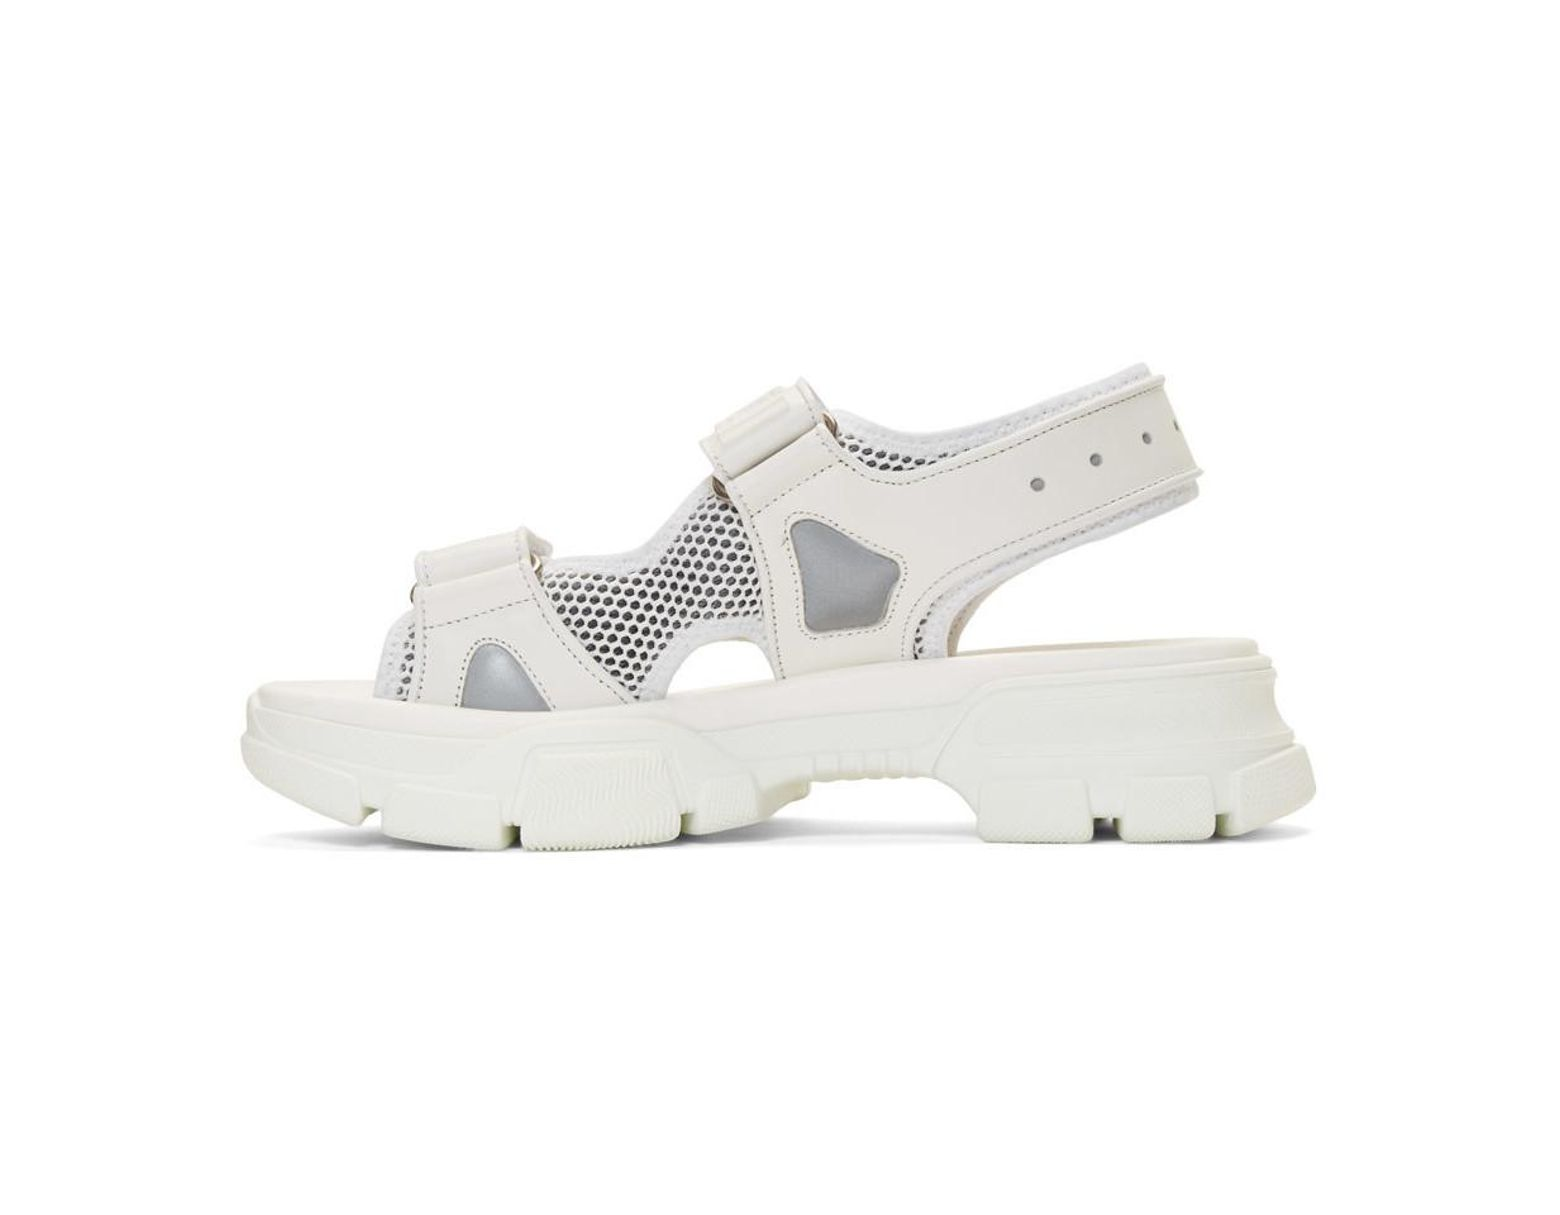 0f7c0333f Gucci Leather And Mesh Sandals in White for Men - Save 12% - Lyst